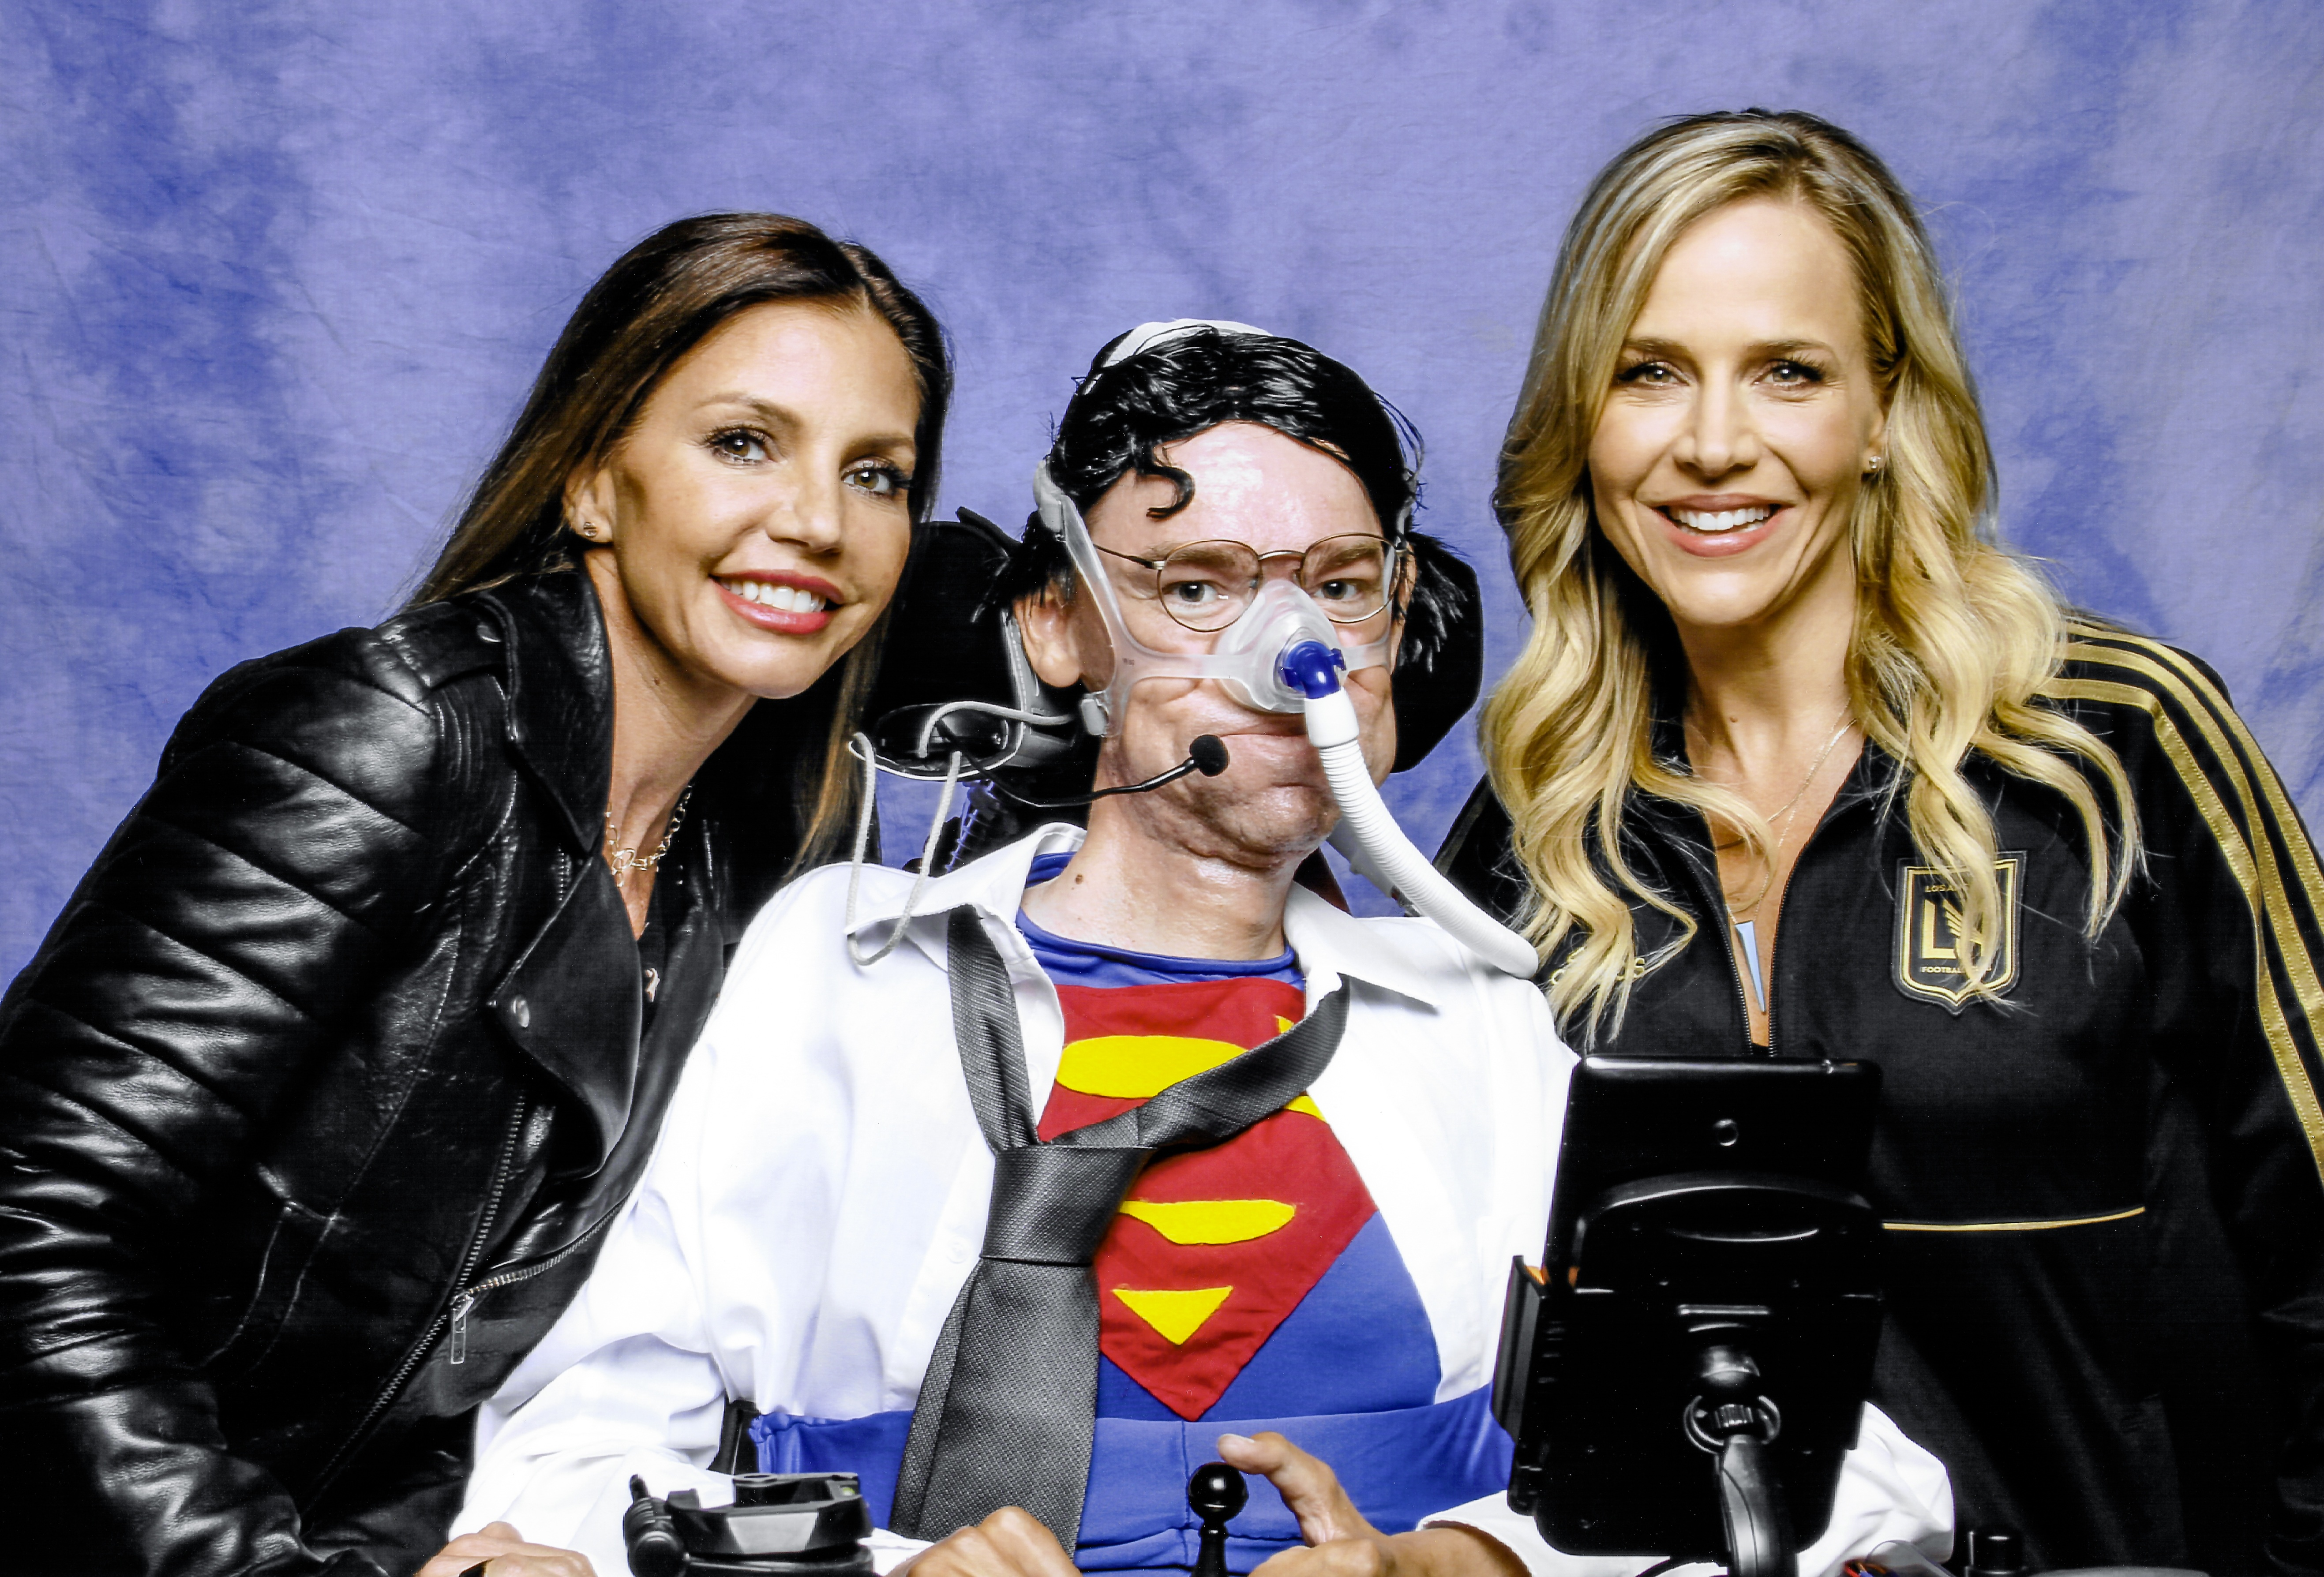 Charisma Carpenter and Julie Benz